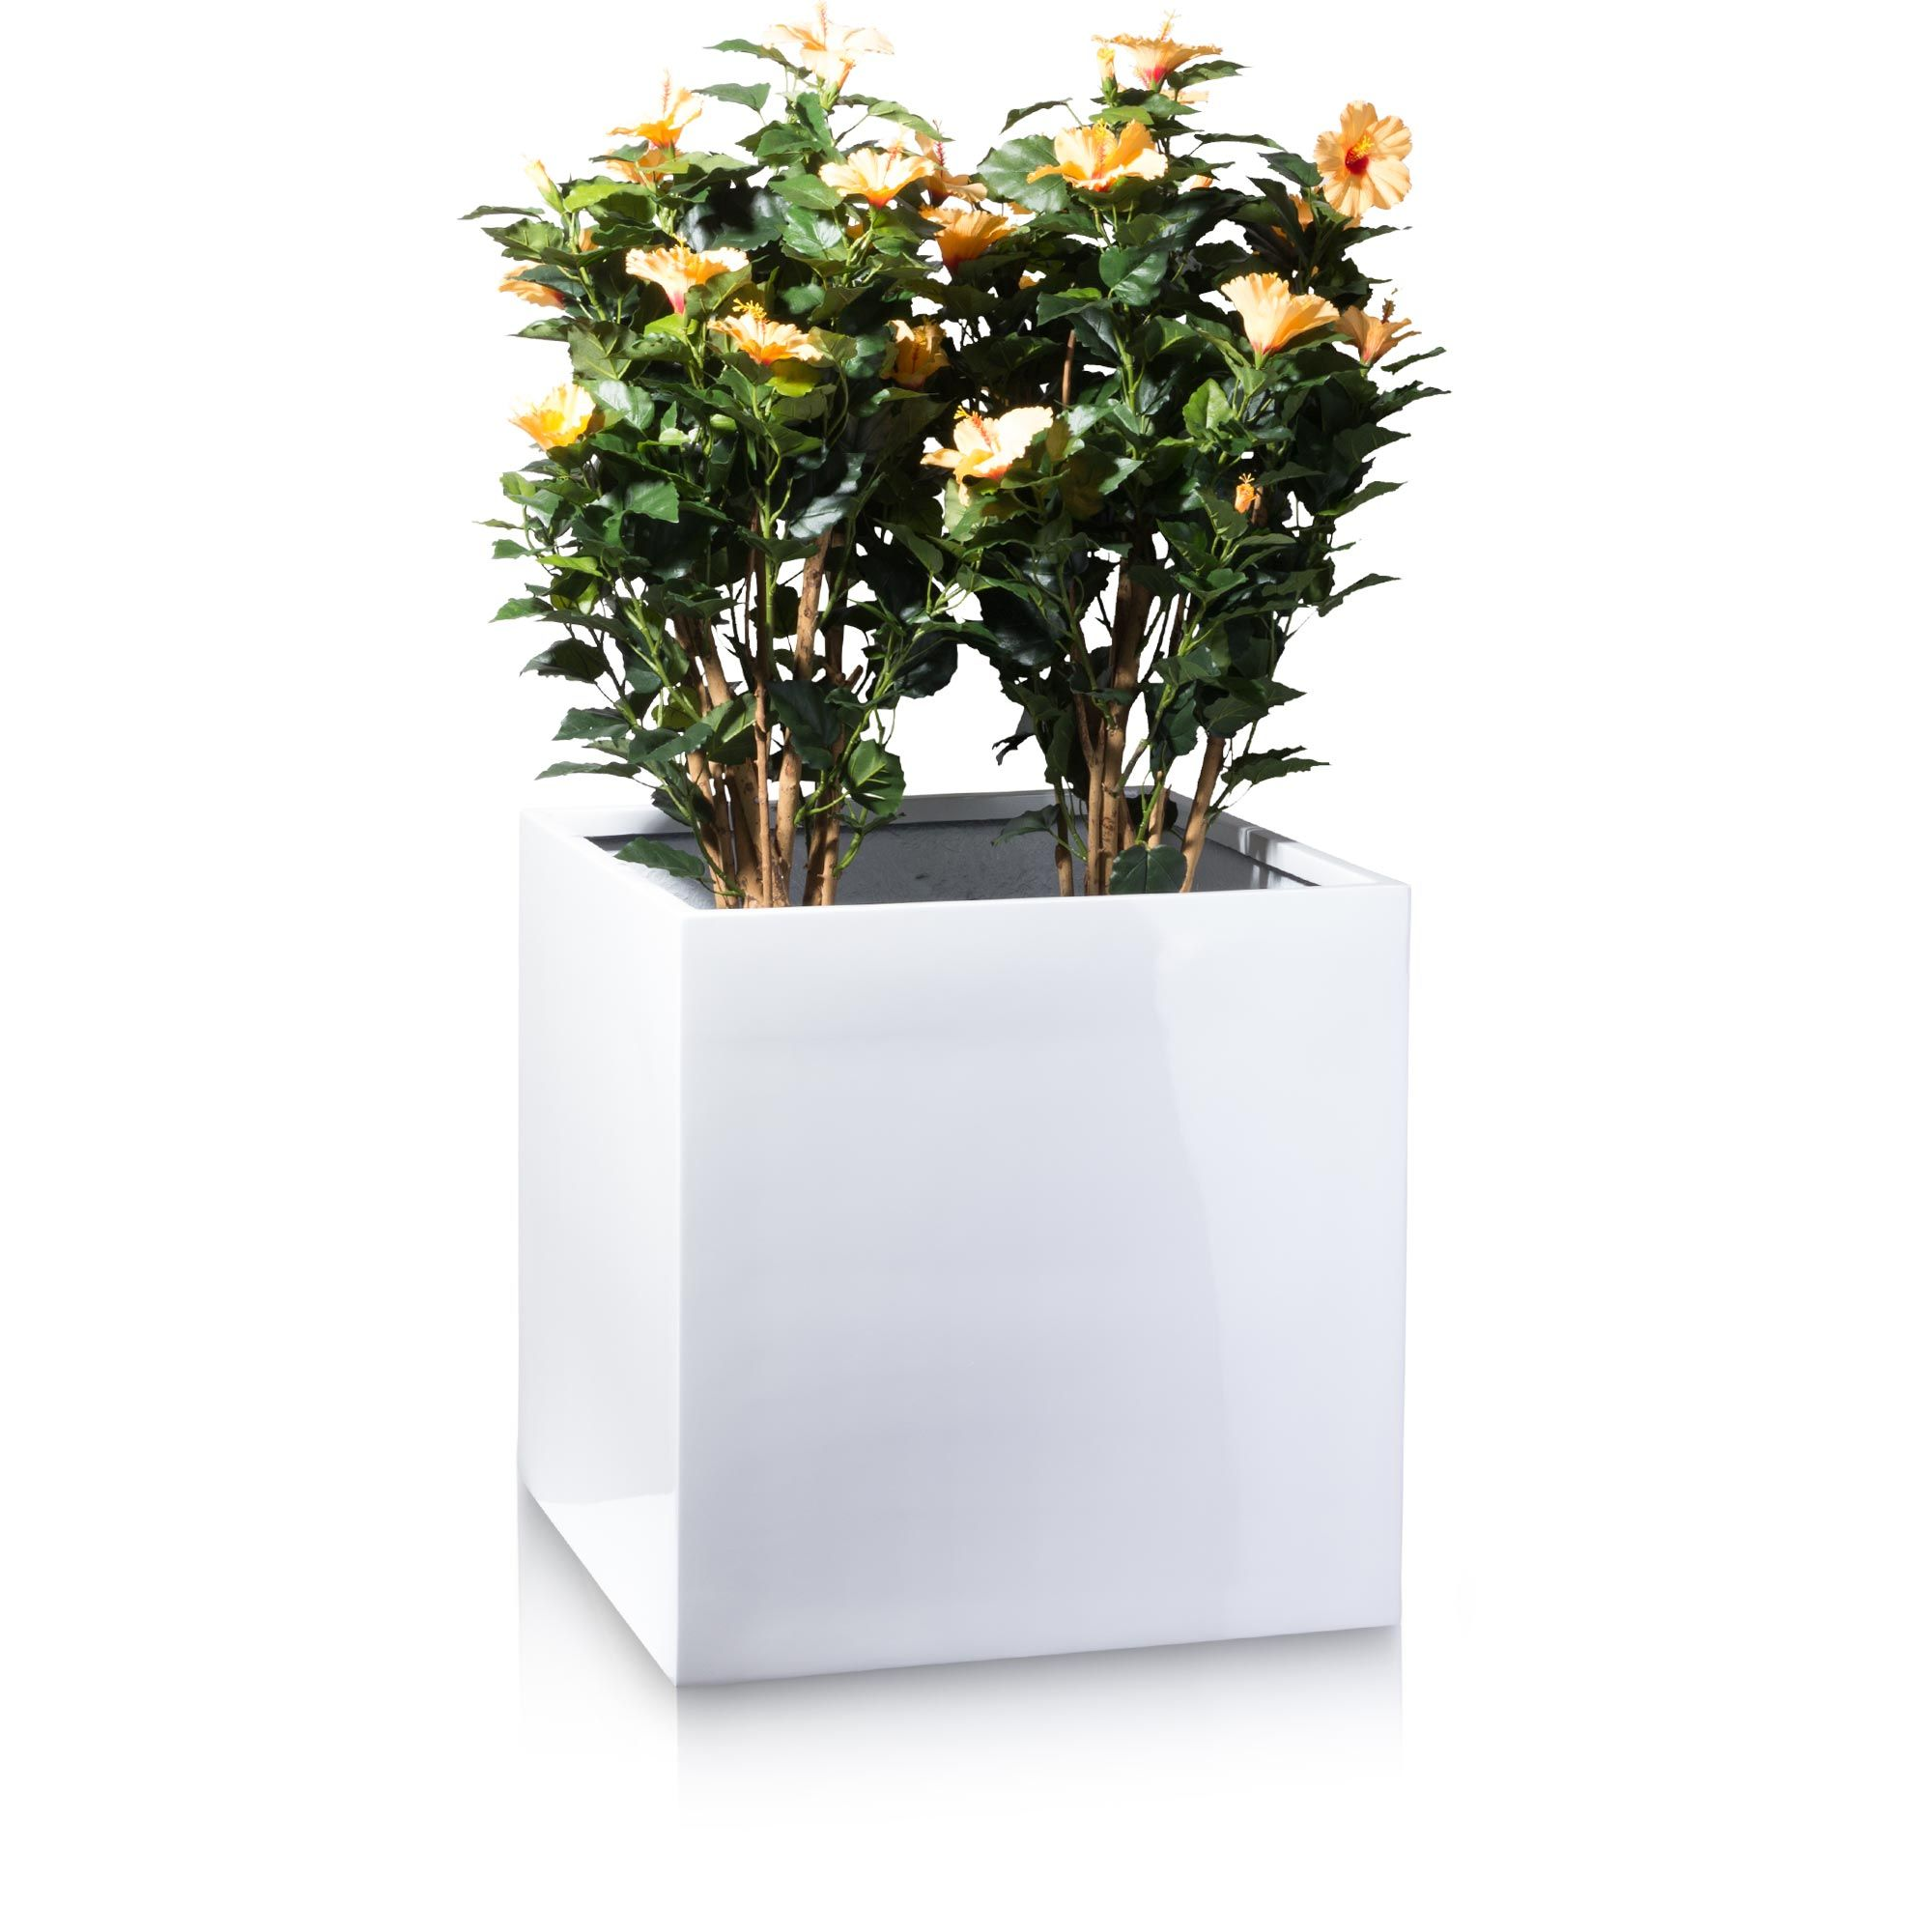 The fibreglass plant pot CUBO 60 comes